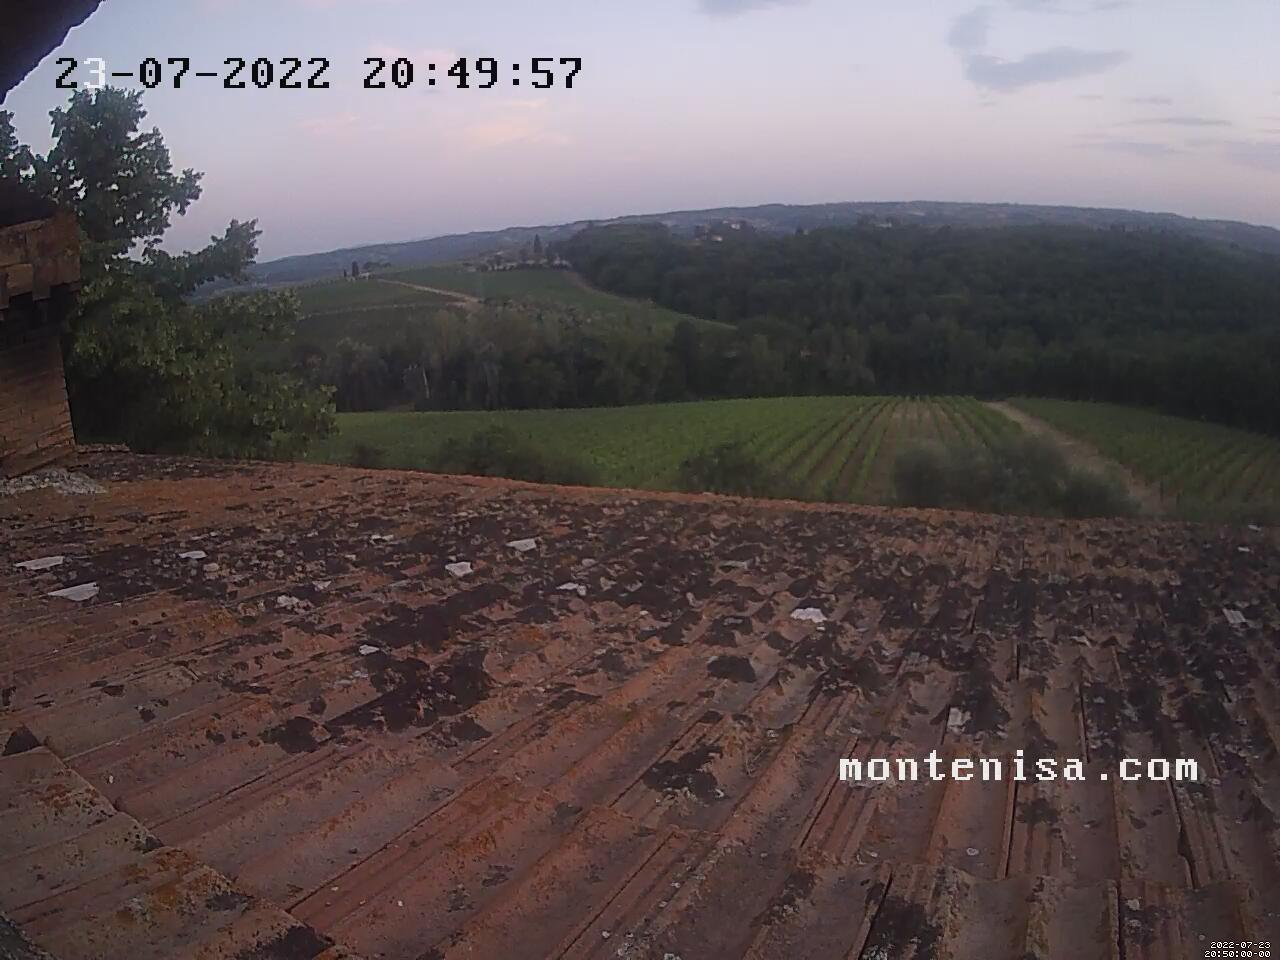 Live images taken from the roof of Monte Nisa - click to enlarge